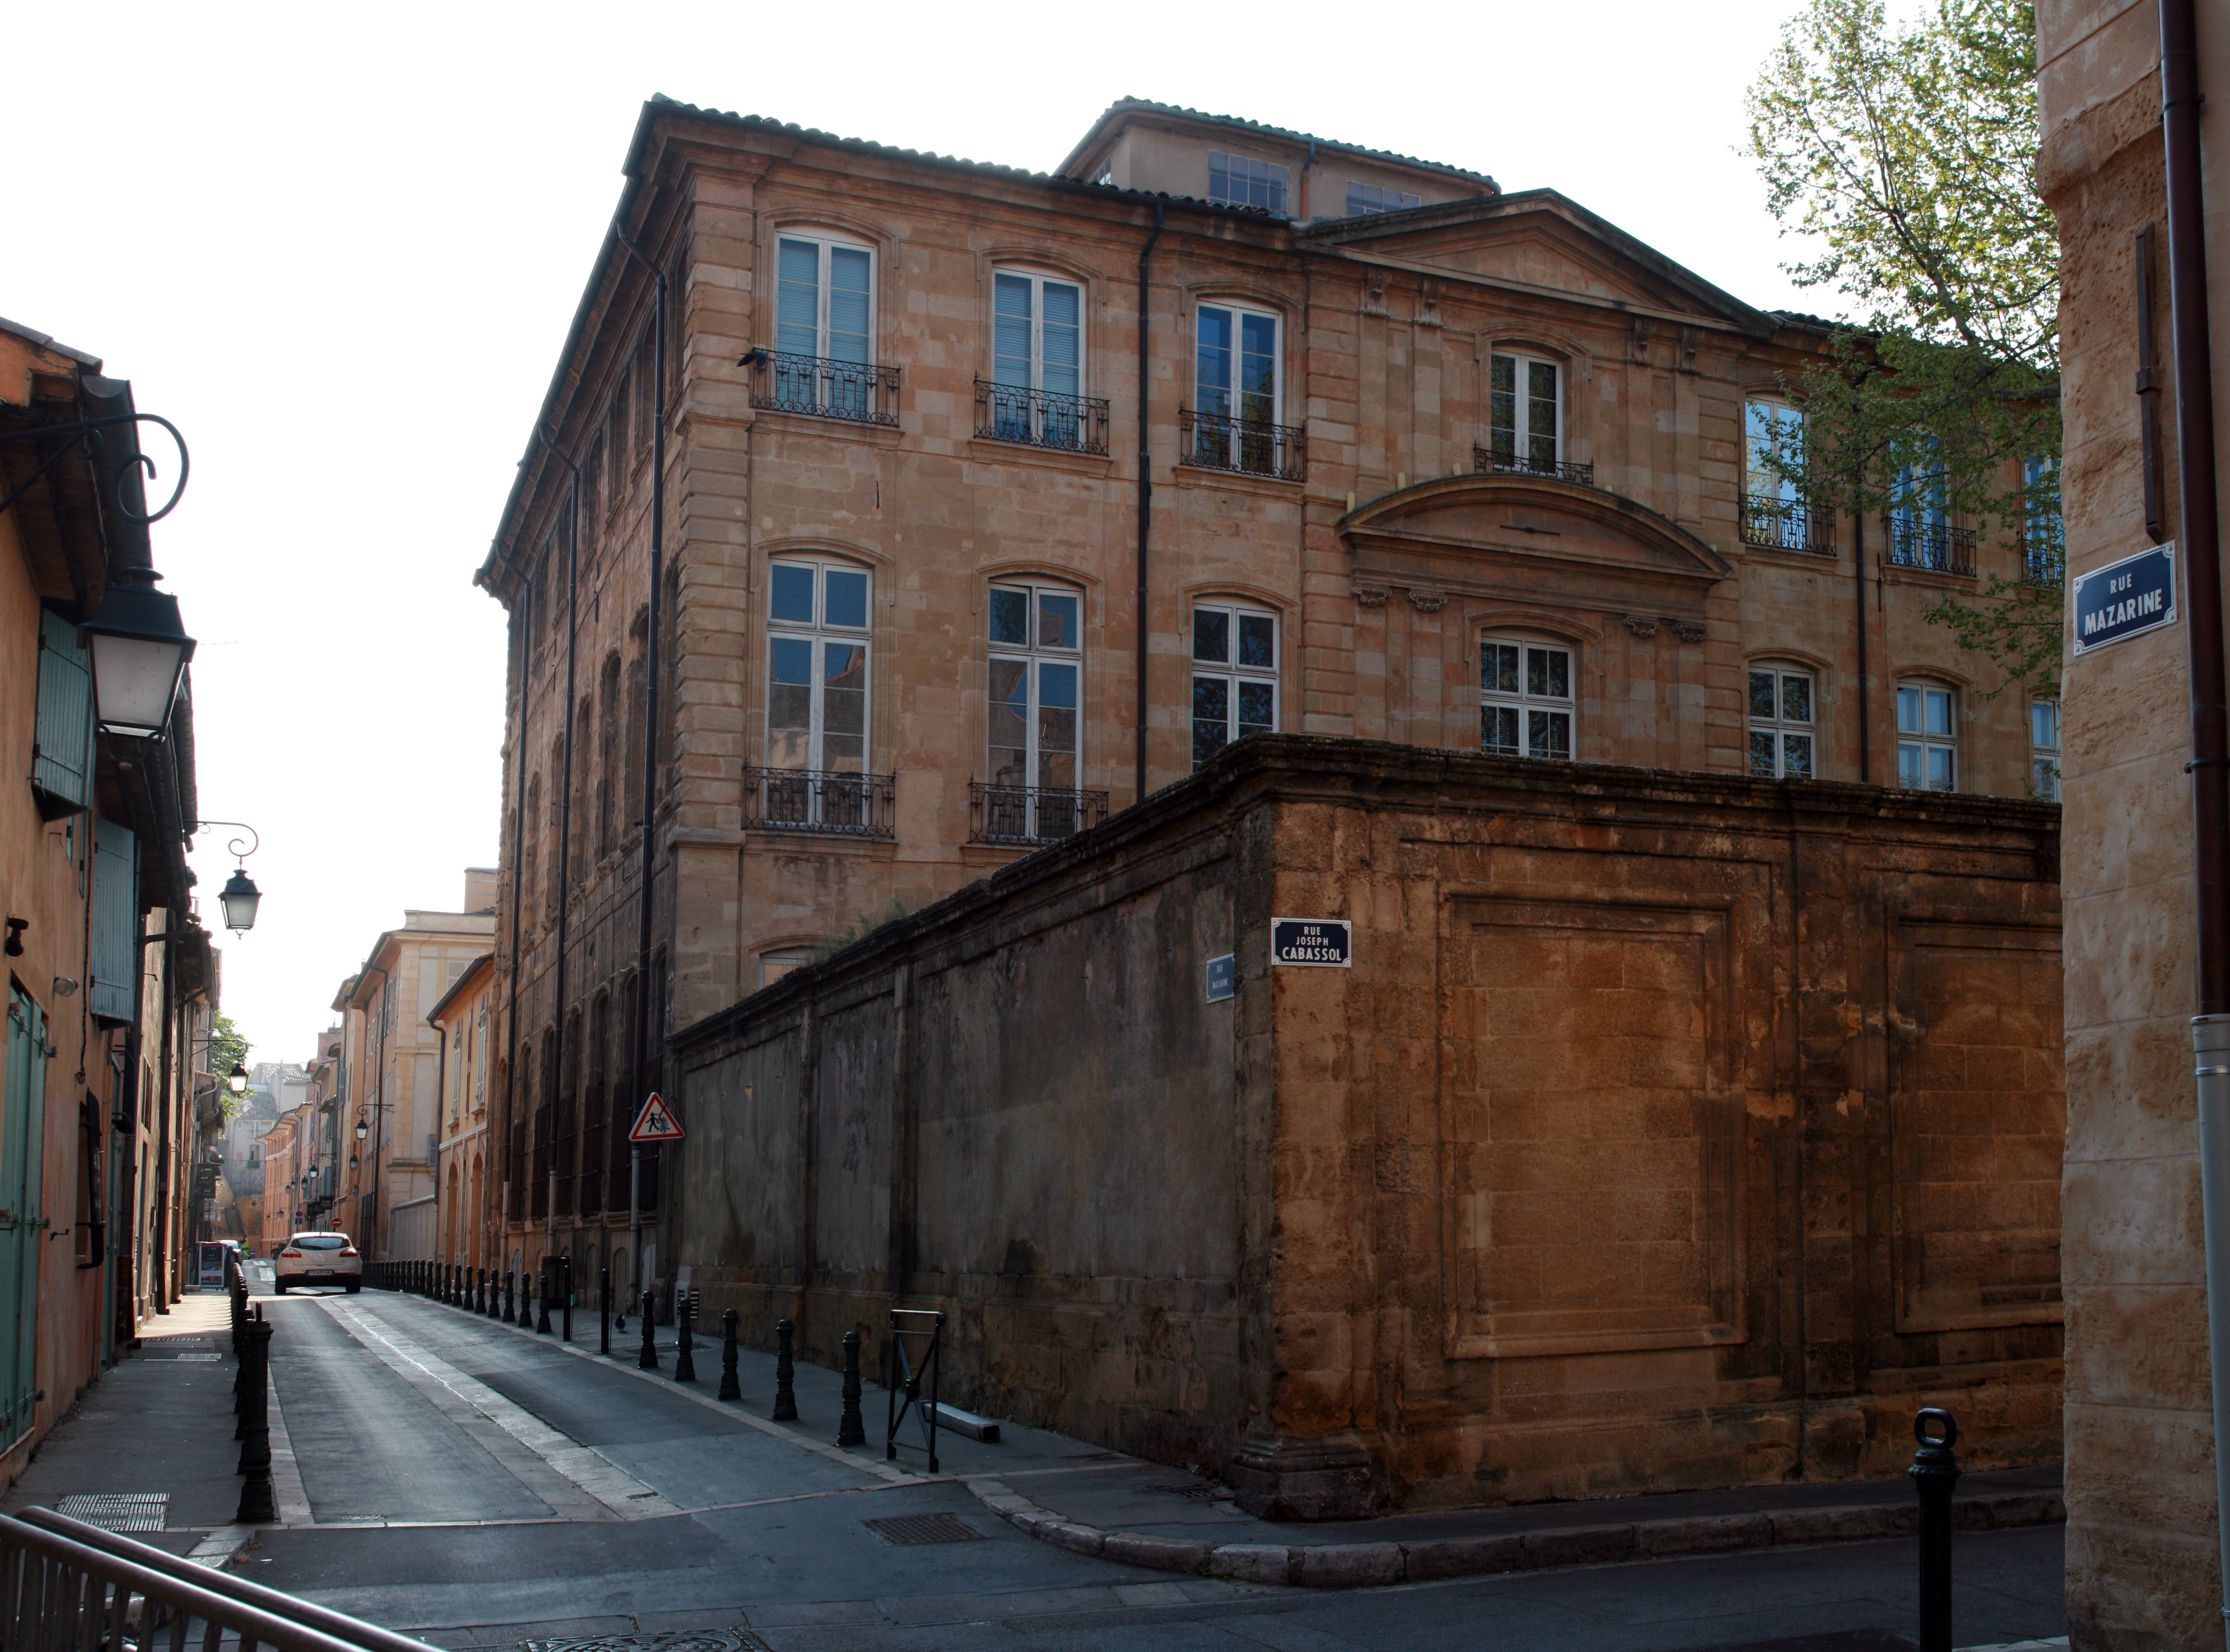 Filehôtel De Caumont, 1, Rue Josephcabassol, Aixen. Low Cost Variable Annuity Esol Classes Online. Free Gantt Chart Program Hotels Edmundston Nb. Emergency Dentist In Birmingham Al. Cyber Security Masters Programs. Where To Buy Cable Splitter Form Llc In Ohio. Cell Phone Management Software. Portland Oregon Assisted Living. Landlord Homeowners Insurance